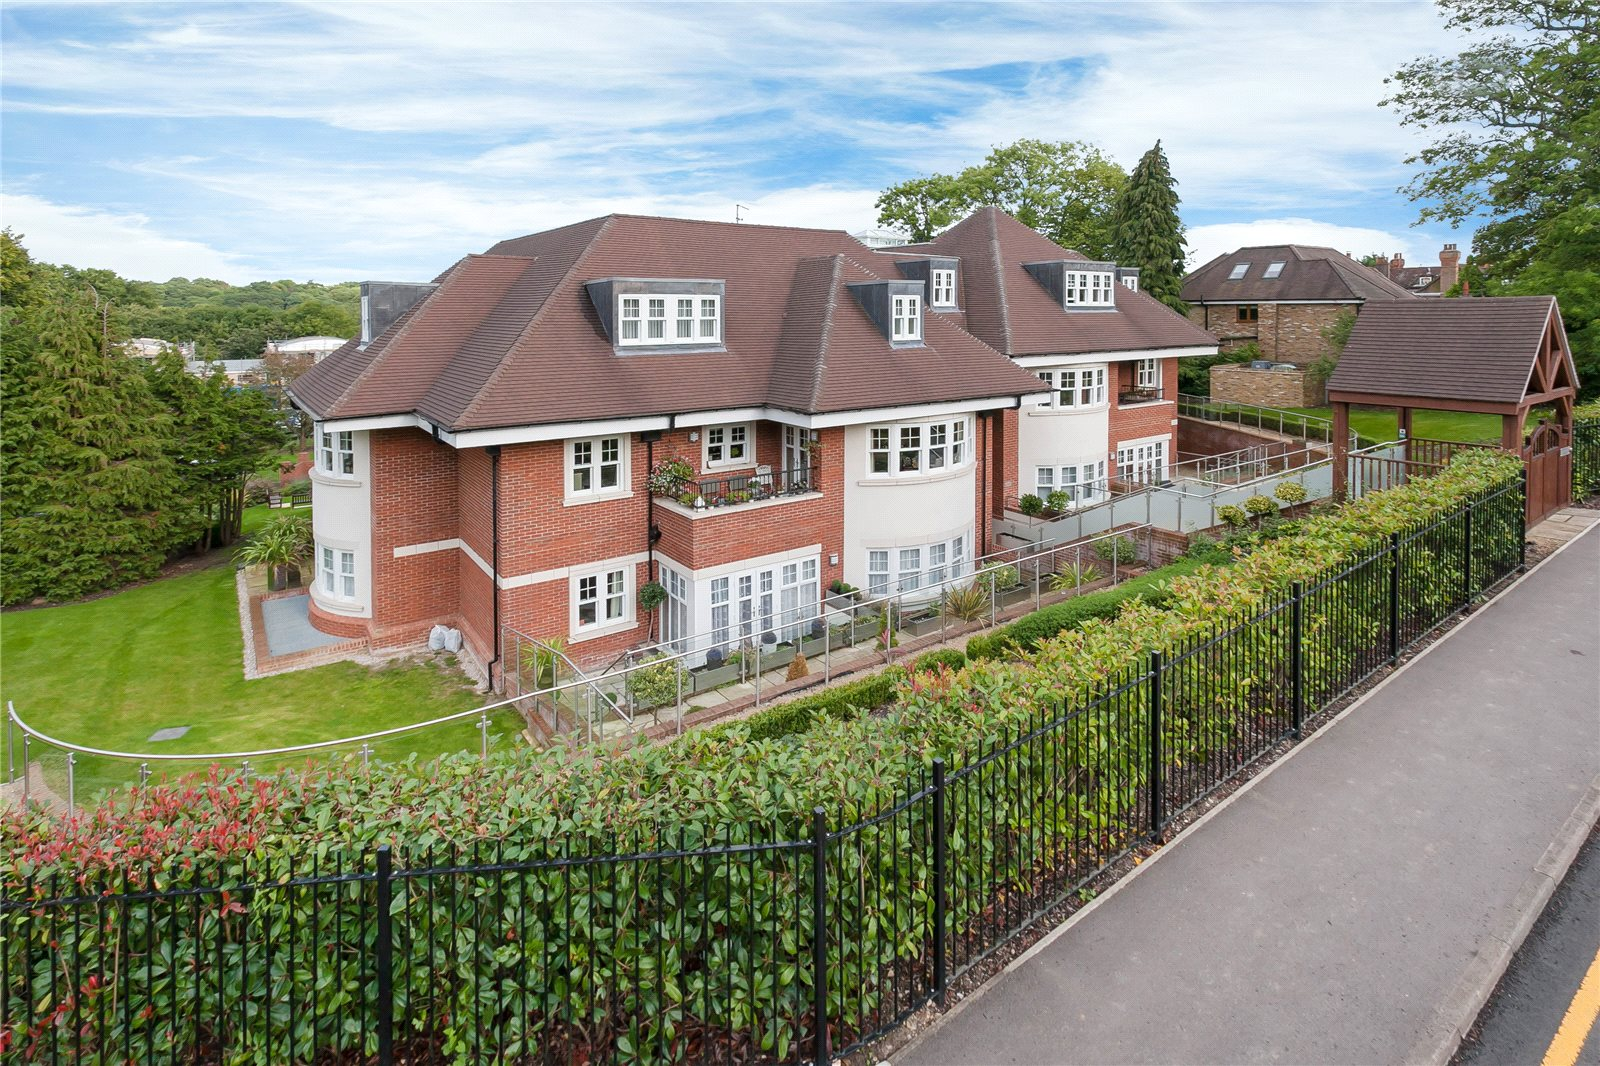 Apartamentos para Venda às Baytrees, 20 South Park View, Gerrards Cross, Buckinghamshire, SL9 Gerrards Cross, Inglaterra